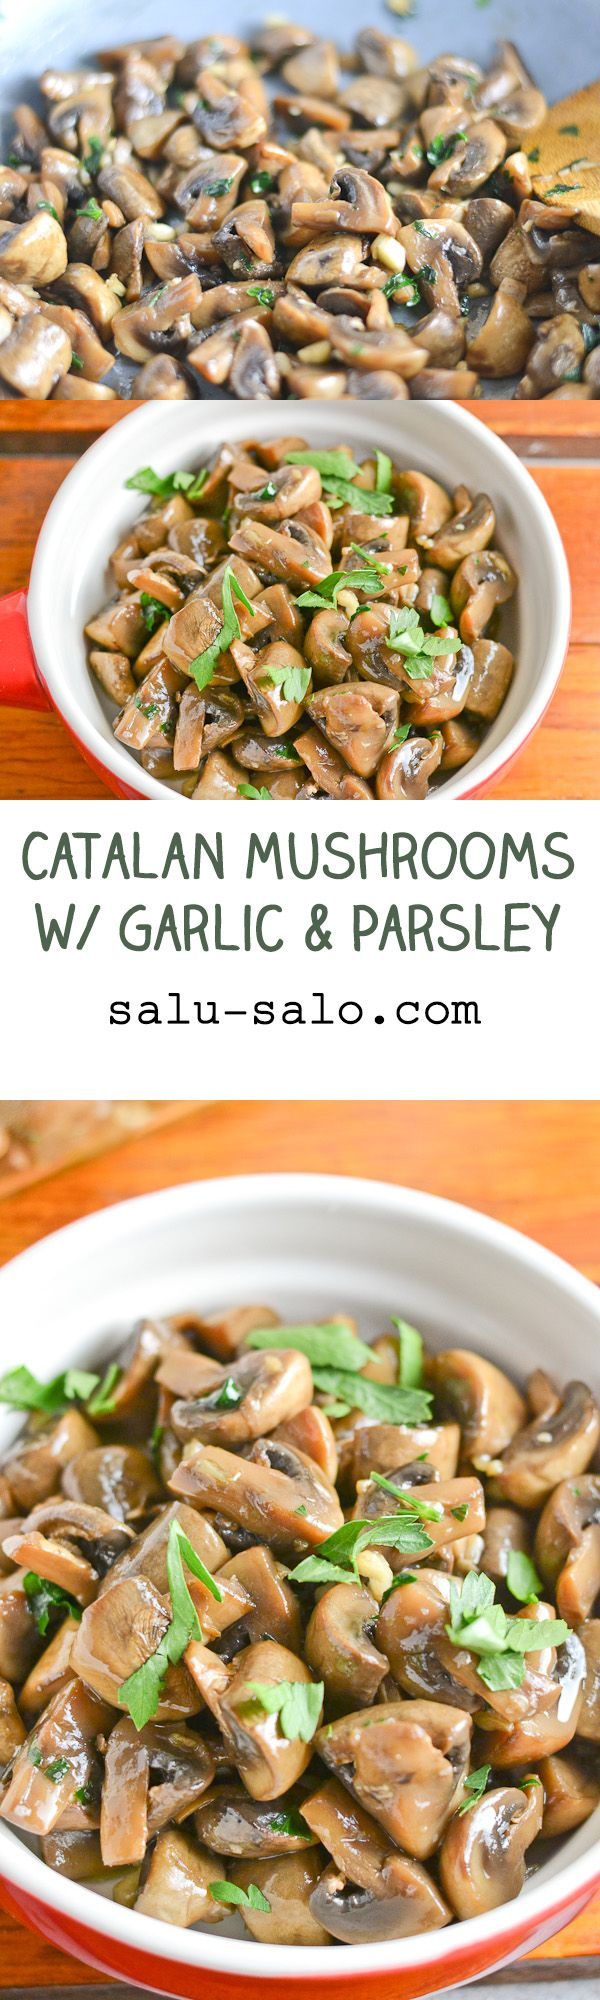 Catalan Mushrooms with Garlic and Parsley